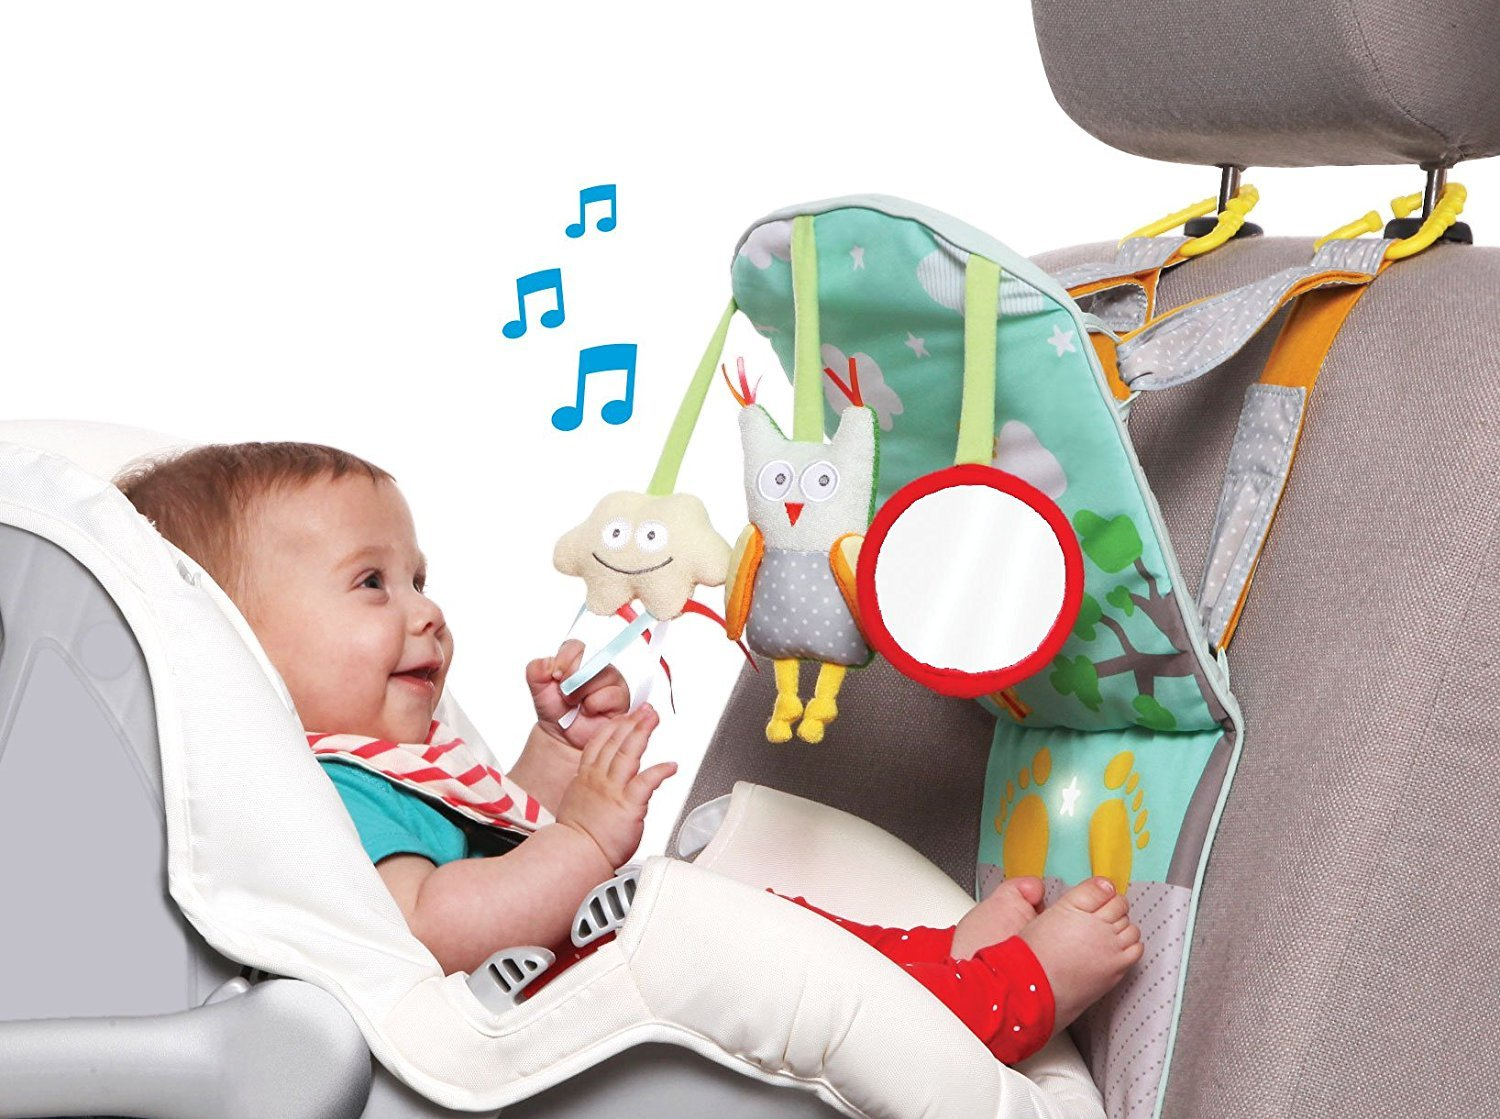 Taf Toys Play & Kick Car Seat Toy | Baby's Activity & Entertaining Center, For Easier Drive And Easier Parenting| Keep Baby Calm| Lights & Musical, Baby Safe Mirror, Detachable Toys